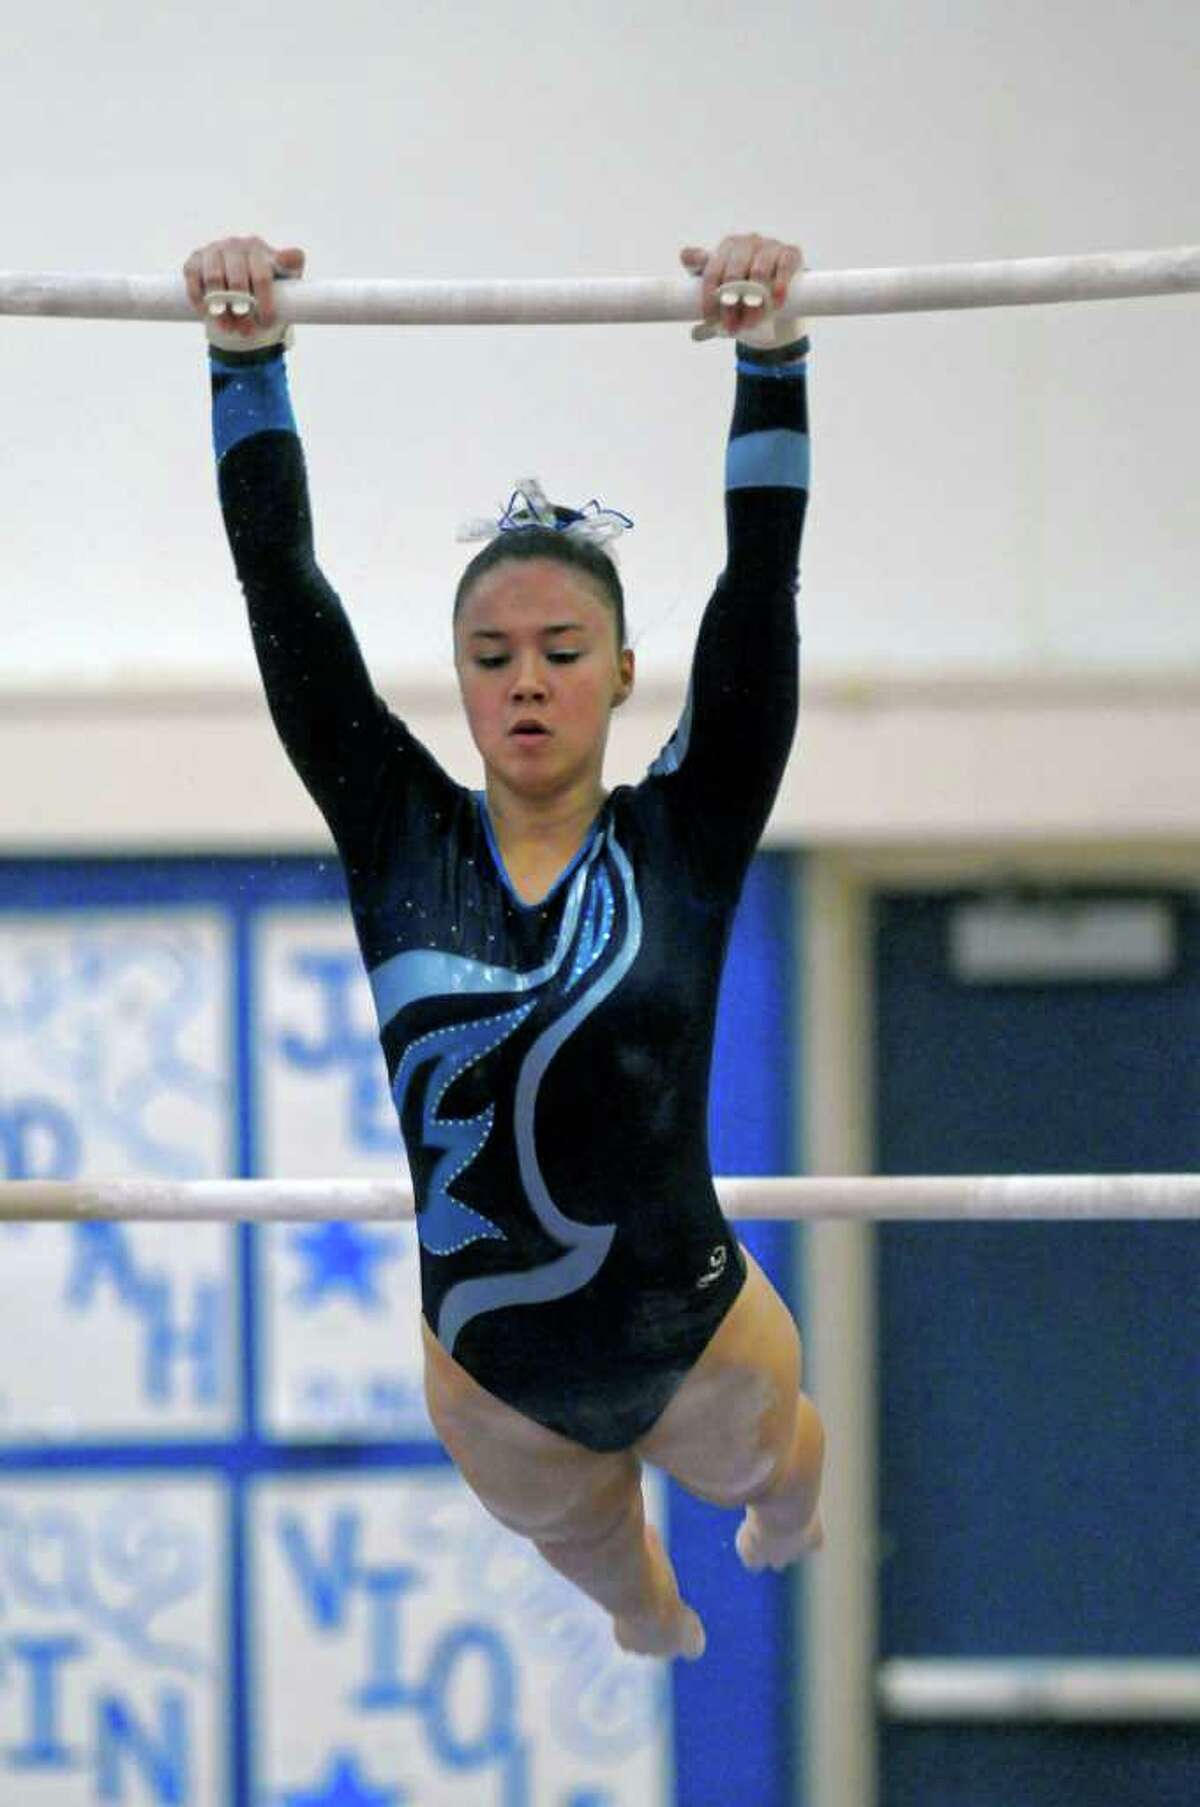 Saratoga's Rema Bianco competes on the bars during the Section II gymnastics championship at Shaker High School on Wednesday Feb. 15, 2012 in Latham, NY. She won the overall individual title. (Philip Kamrass / Times Union )